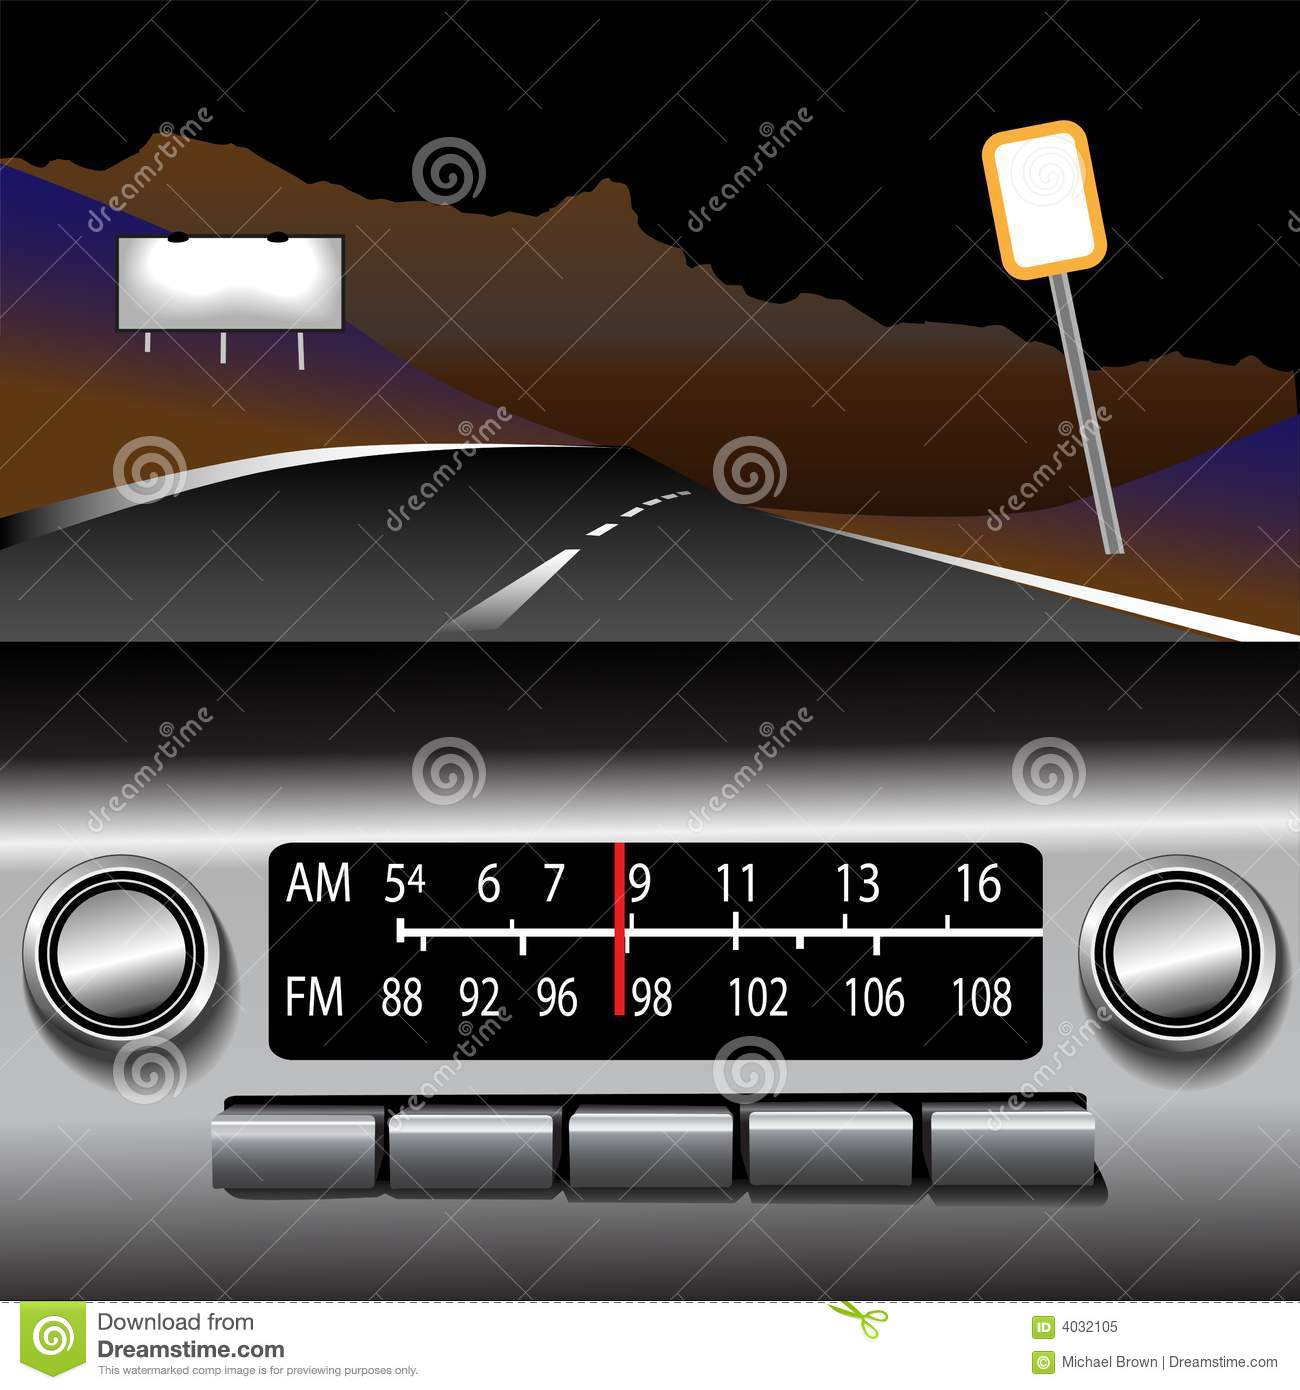 Ashboard Radio AM FM Highway Drive Background Stock Vector